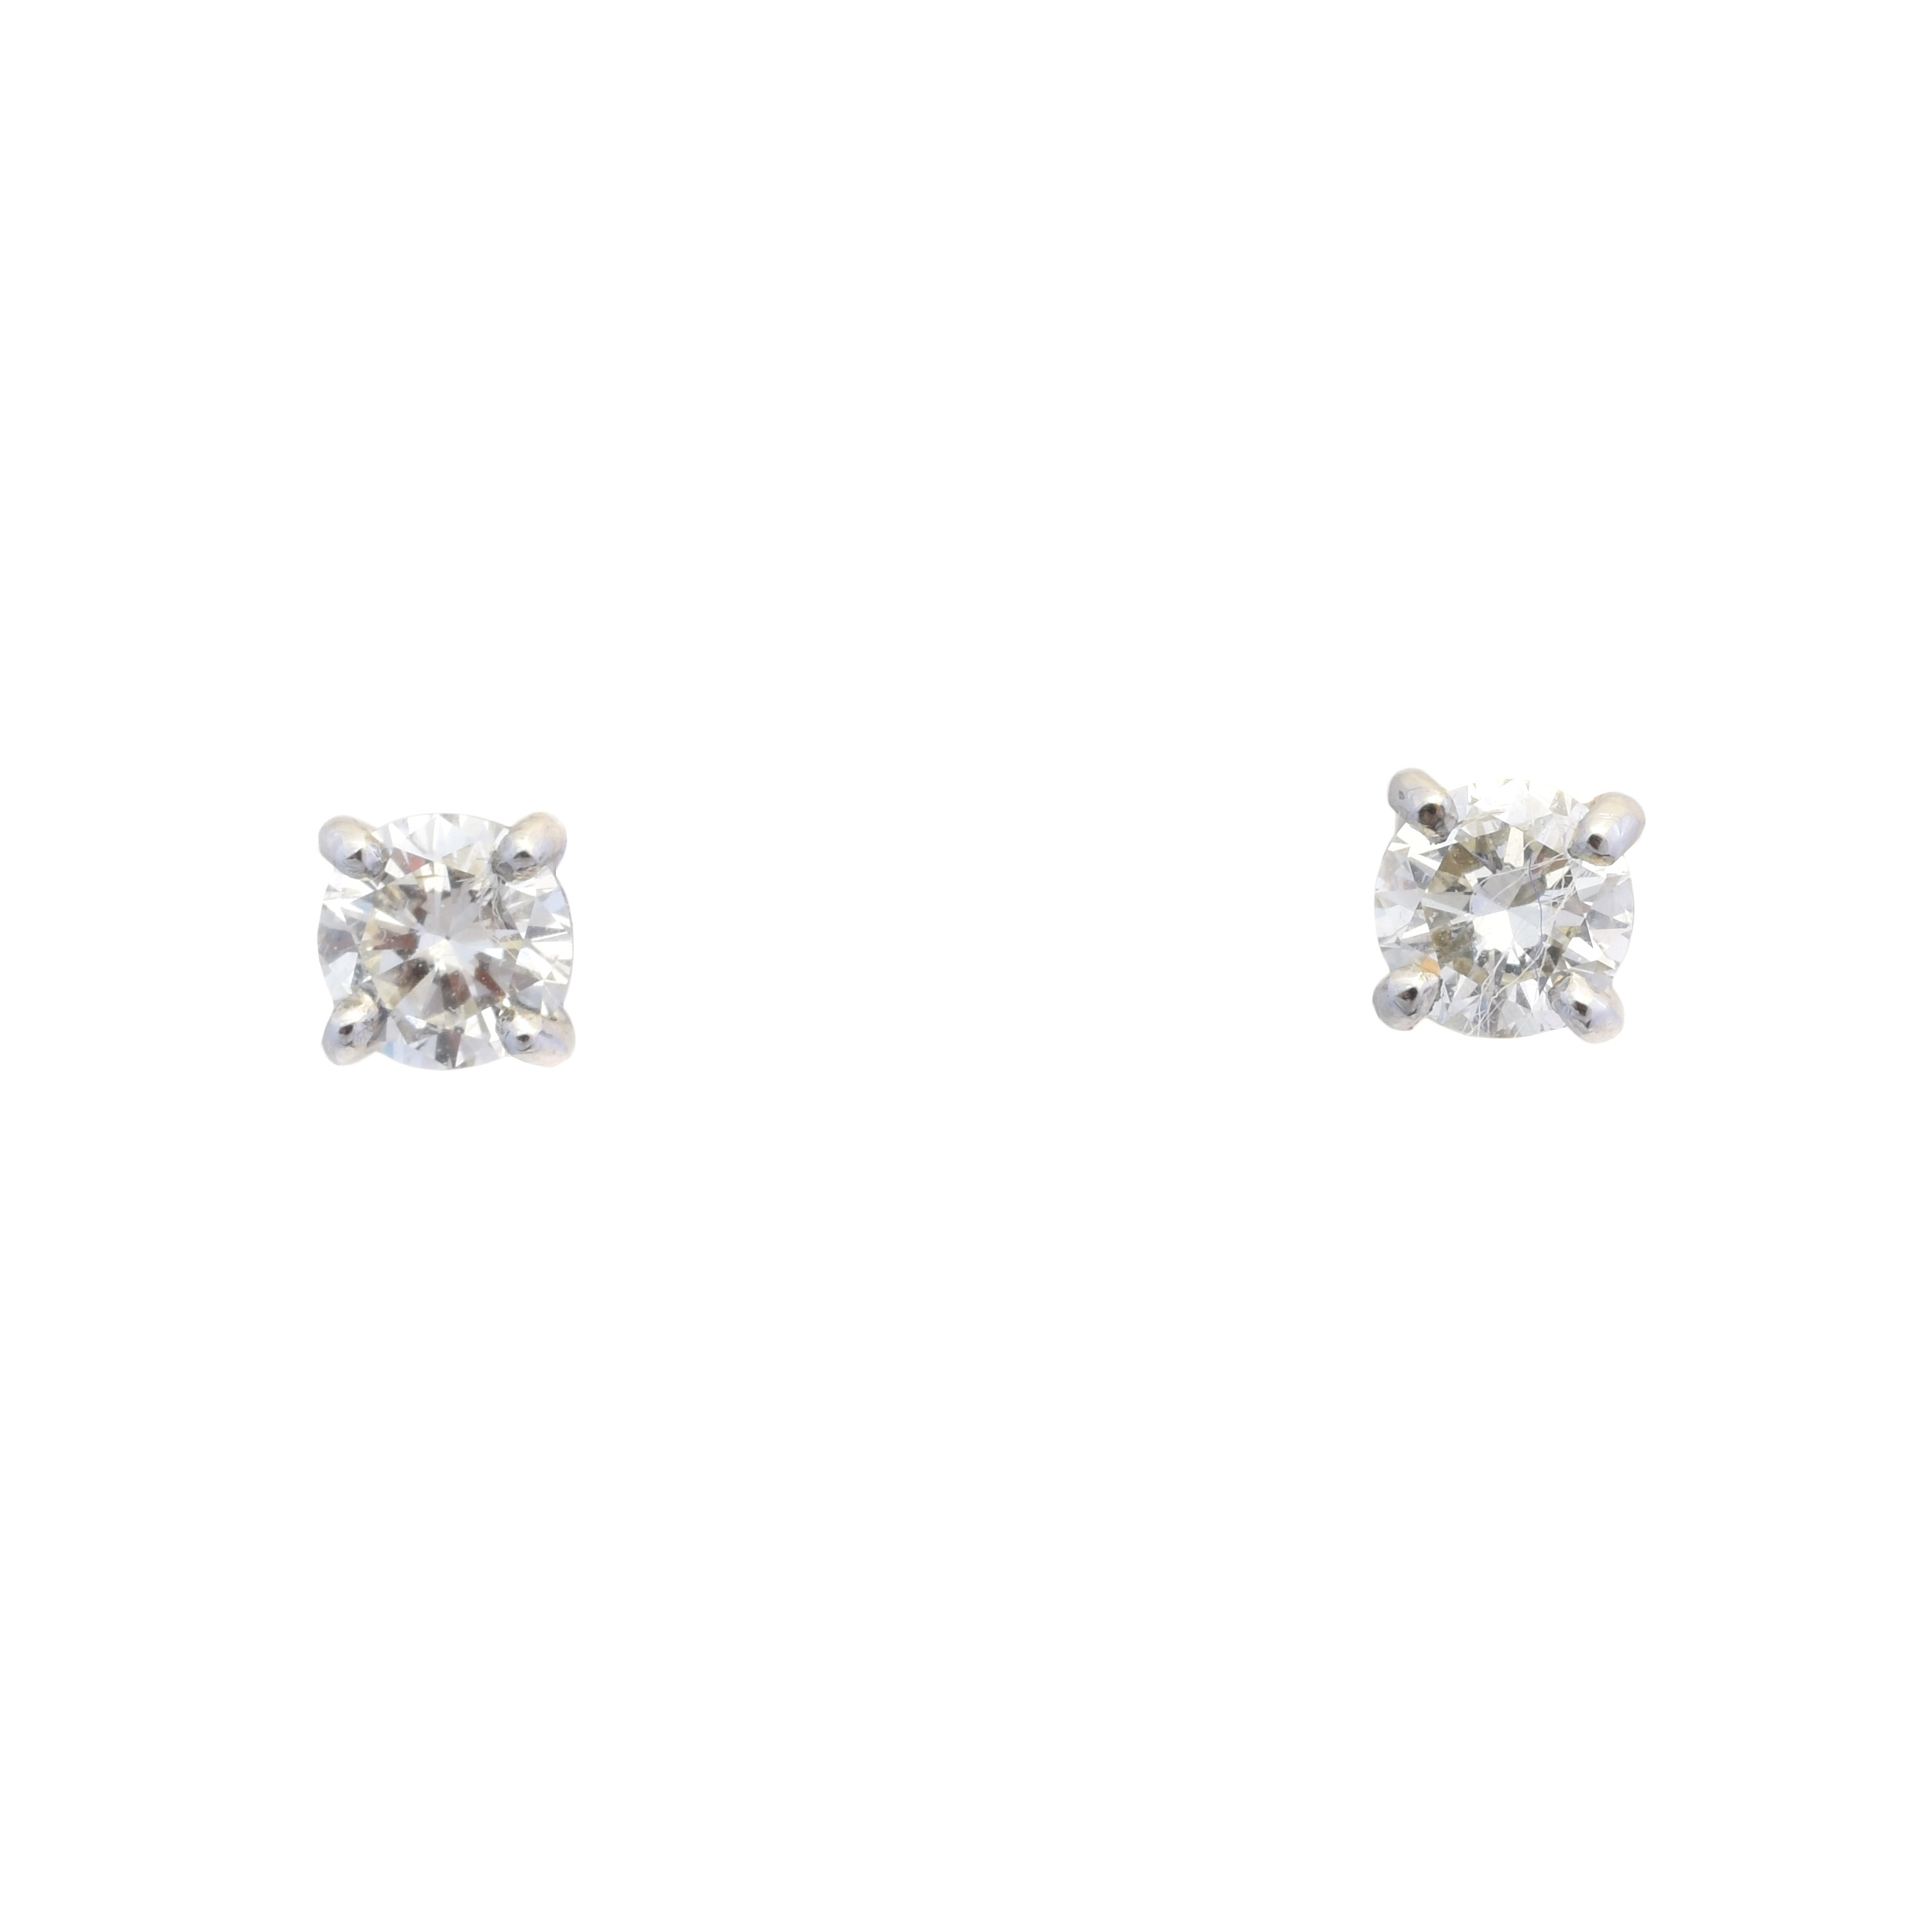 A pair of 18ct gold brilliant cut diamond stud earrings, estimated total diamond weight 0.80ct, estimated colour I-J, estimated clarity P1-P2, hallmarks for Birmingham, gross weight 1.7g.